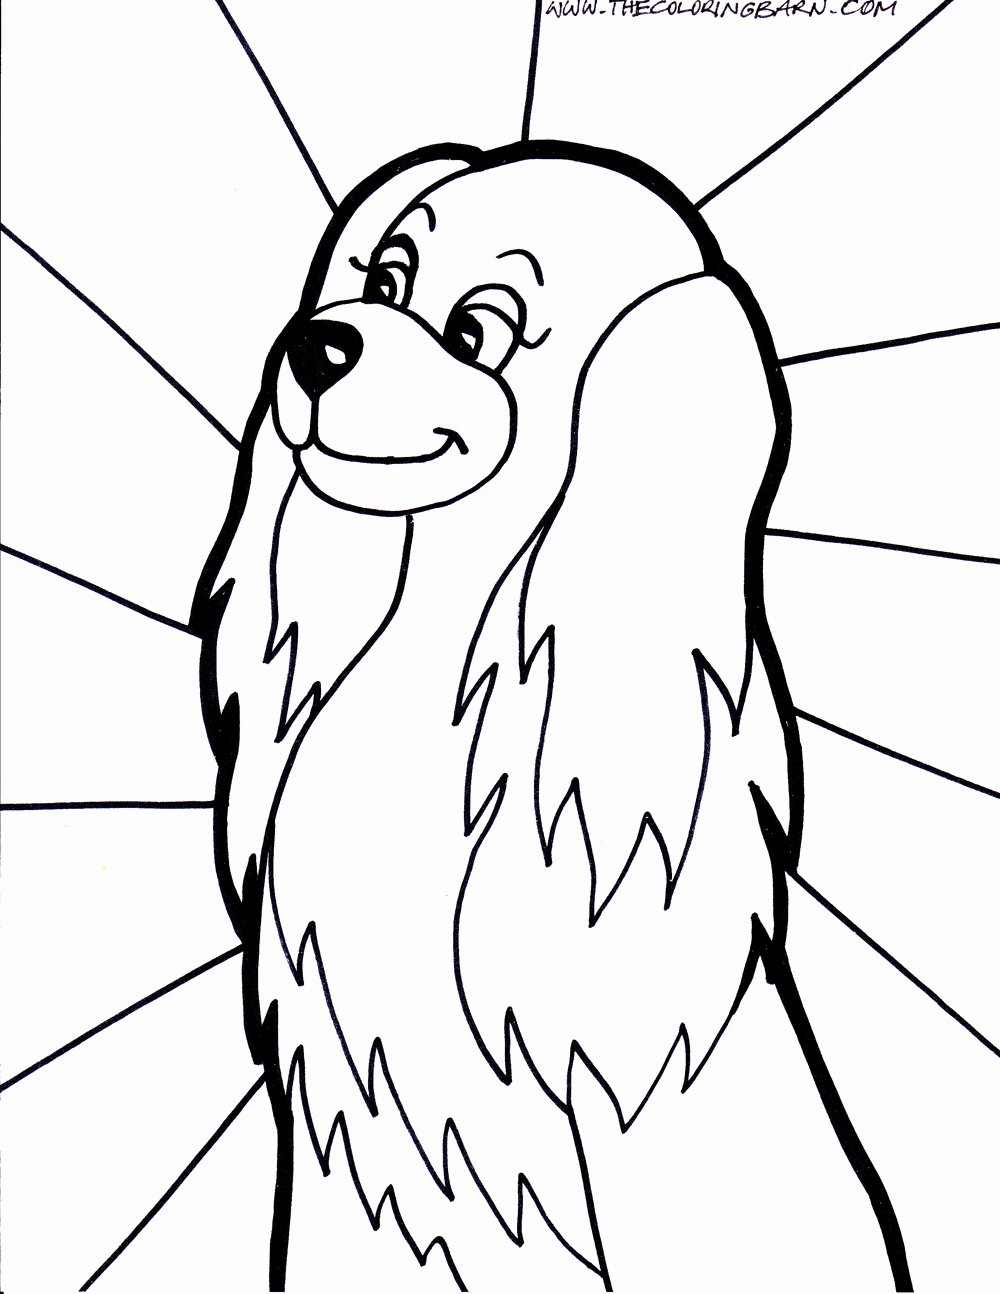 Coloring Pages Of Puppies Best Of Free Puppies to Print Download Free Clip Art